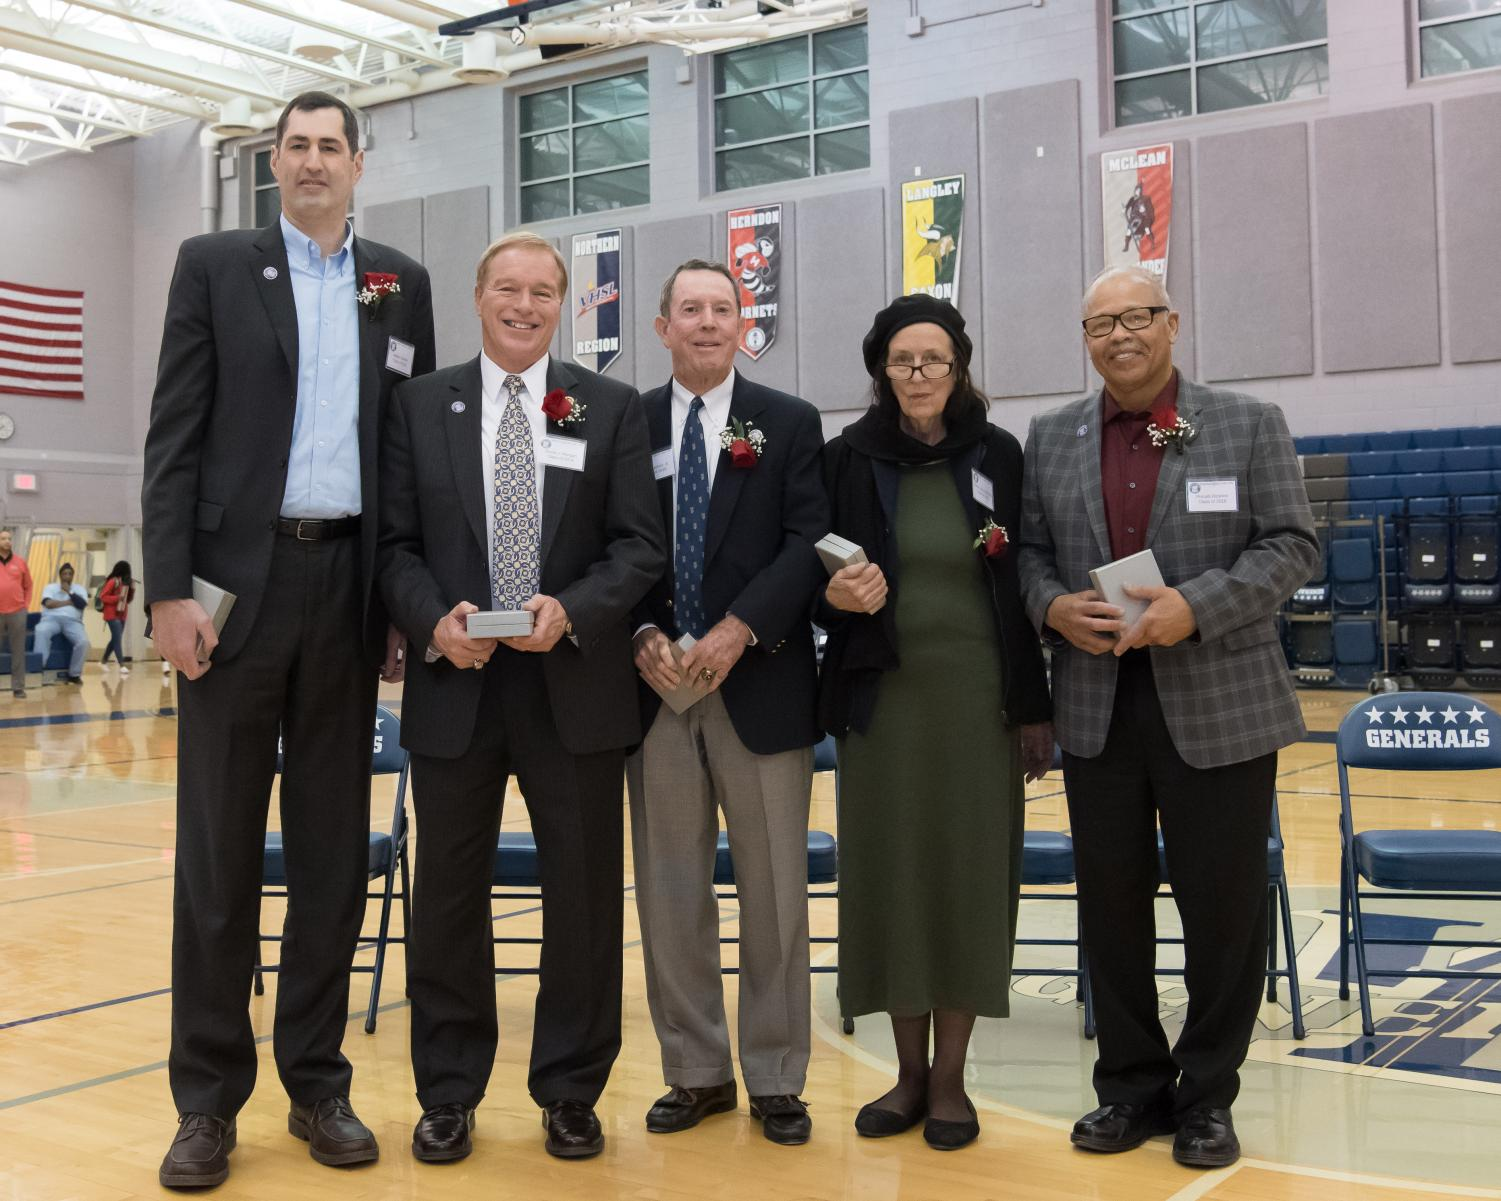 The inductees were honored during in between the girls' and boys' varsity basketball games on Friday, January 19.